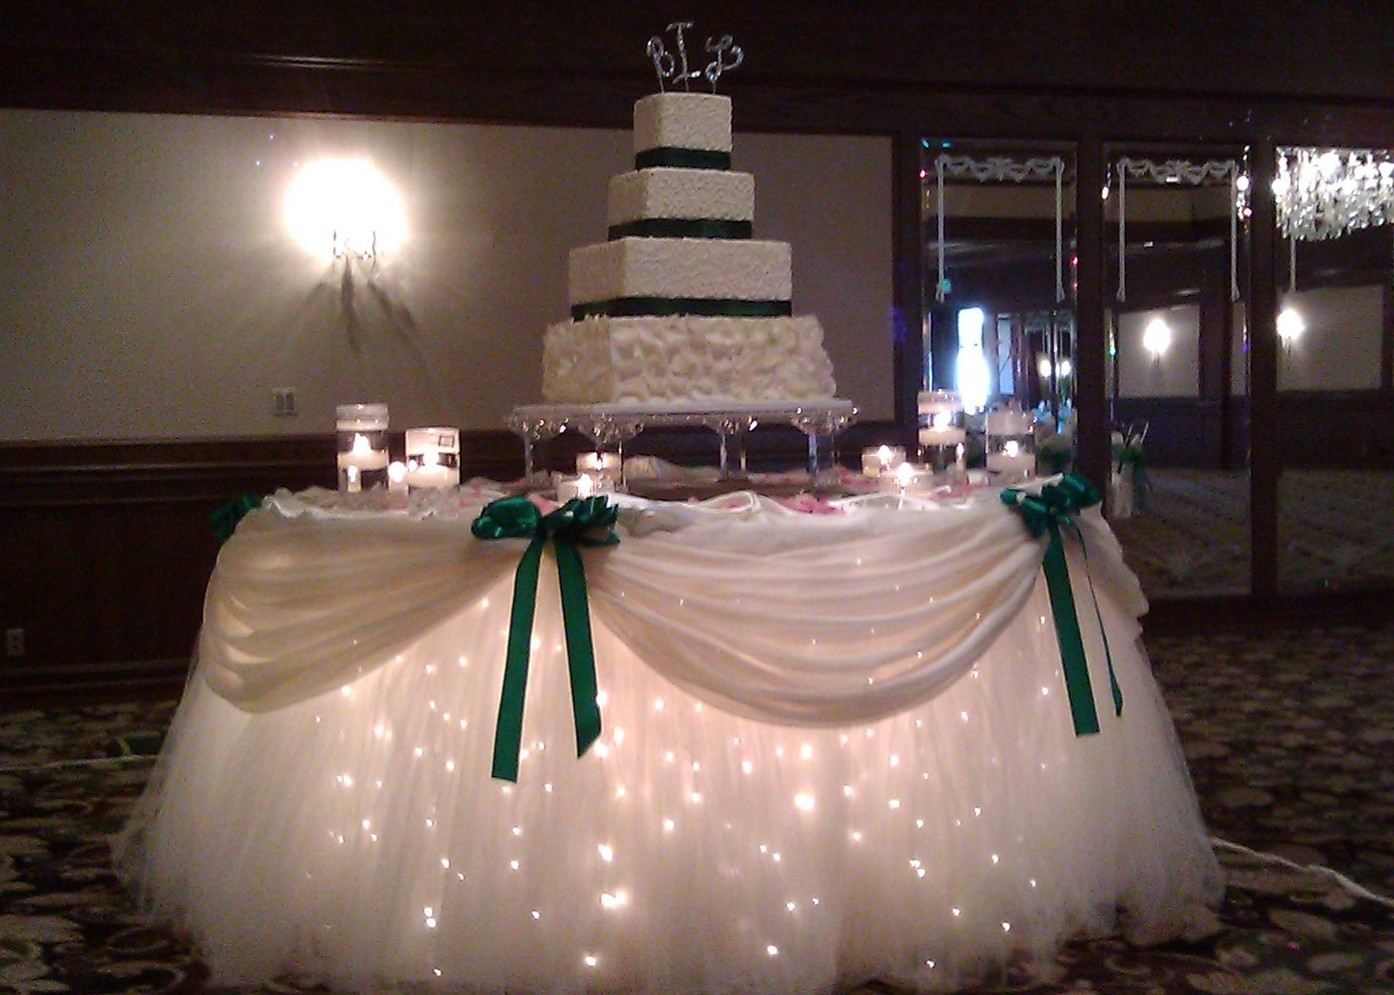 Cake Table Decoration Images : SBD Events - The Event Specialist: Lesley and Bill s ...